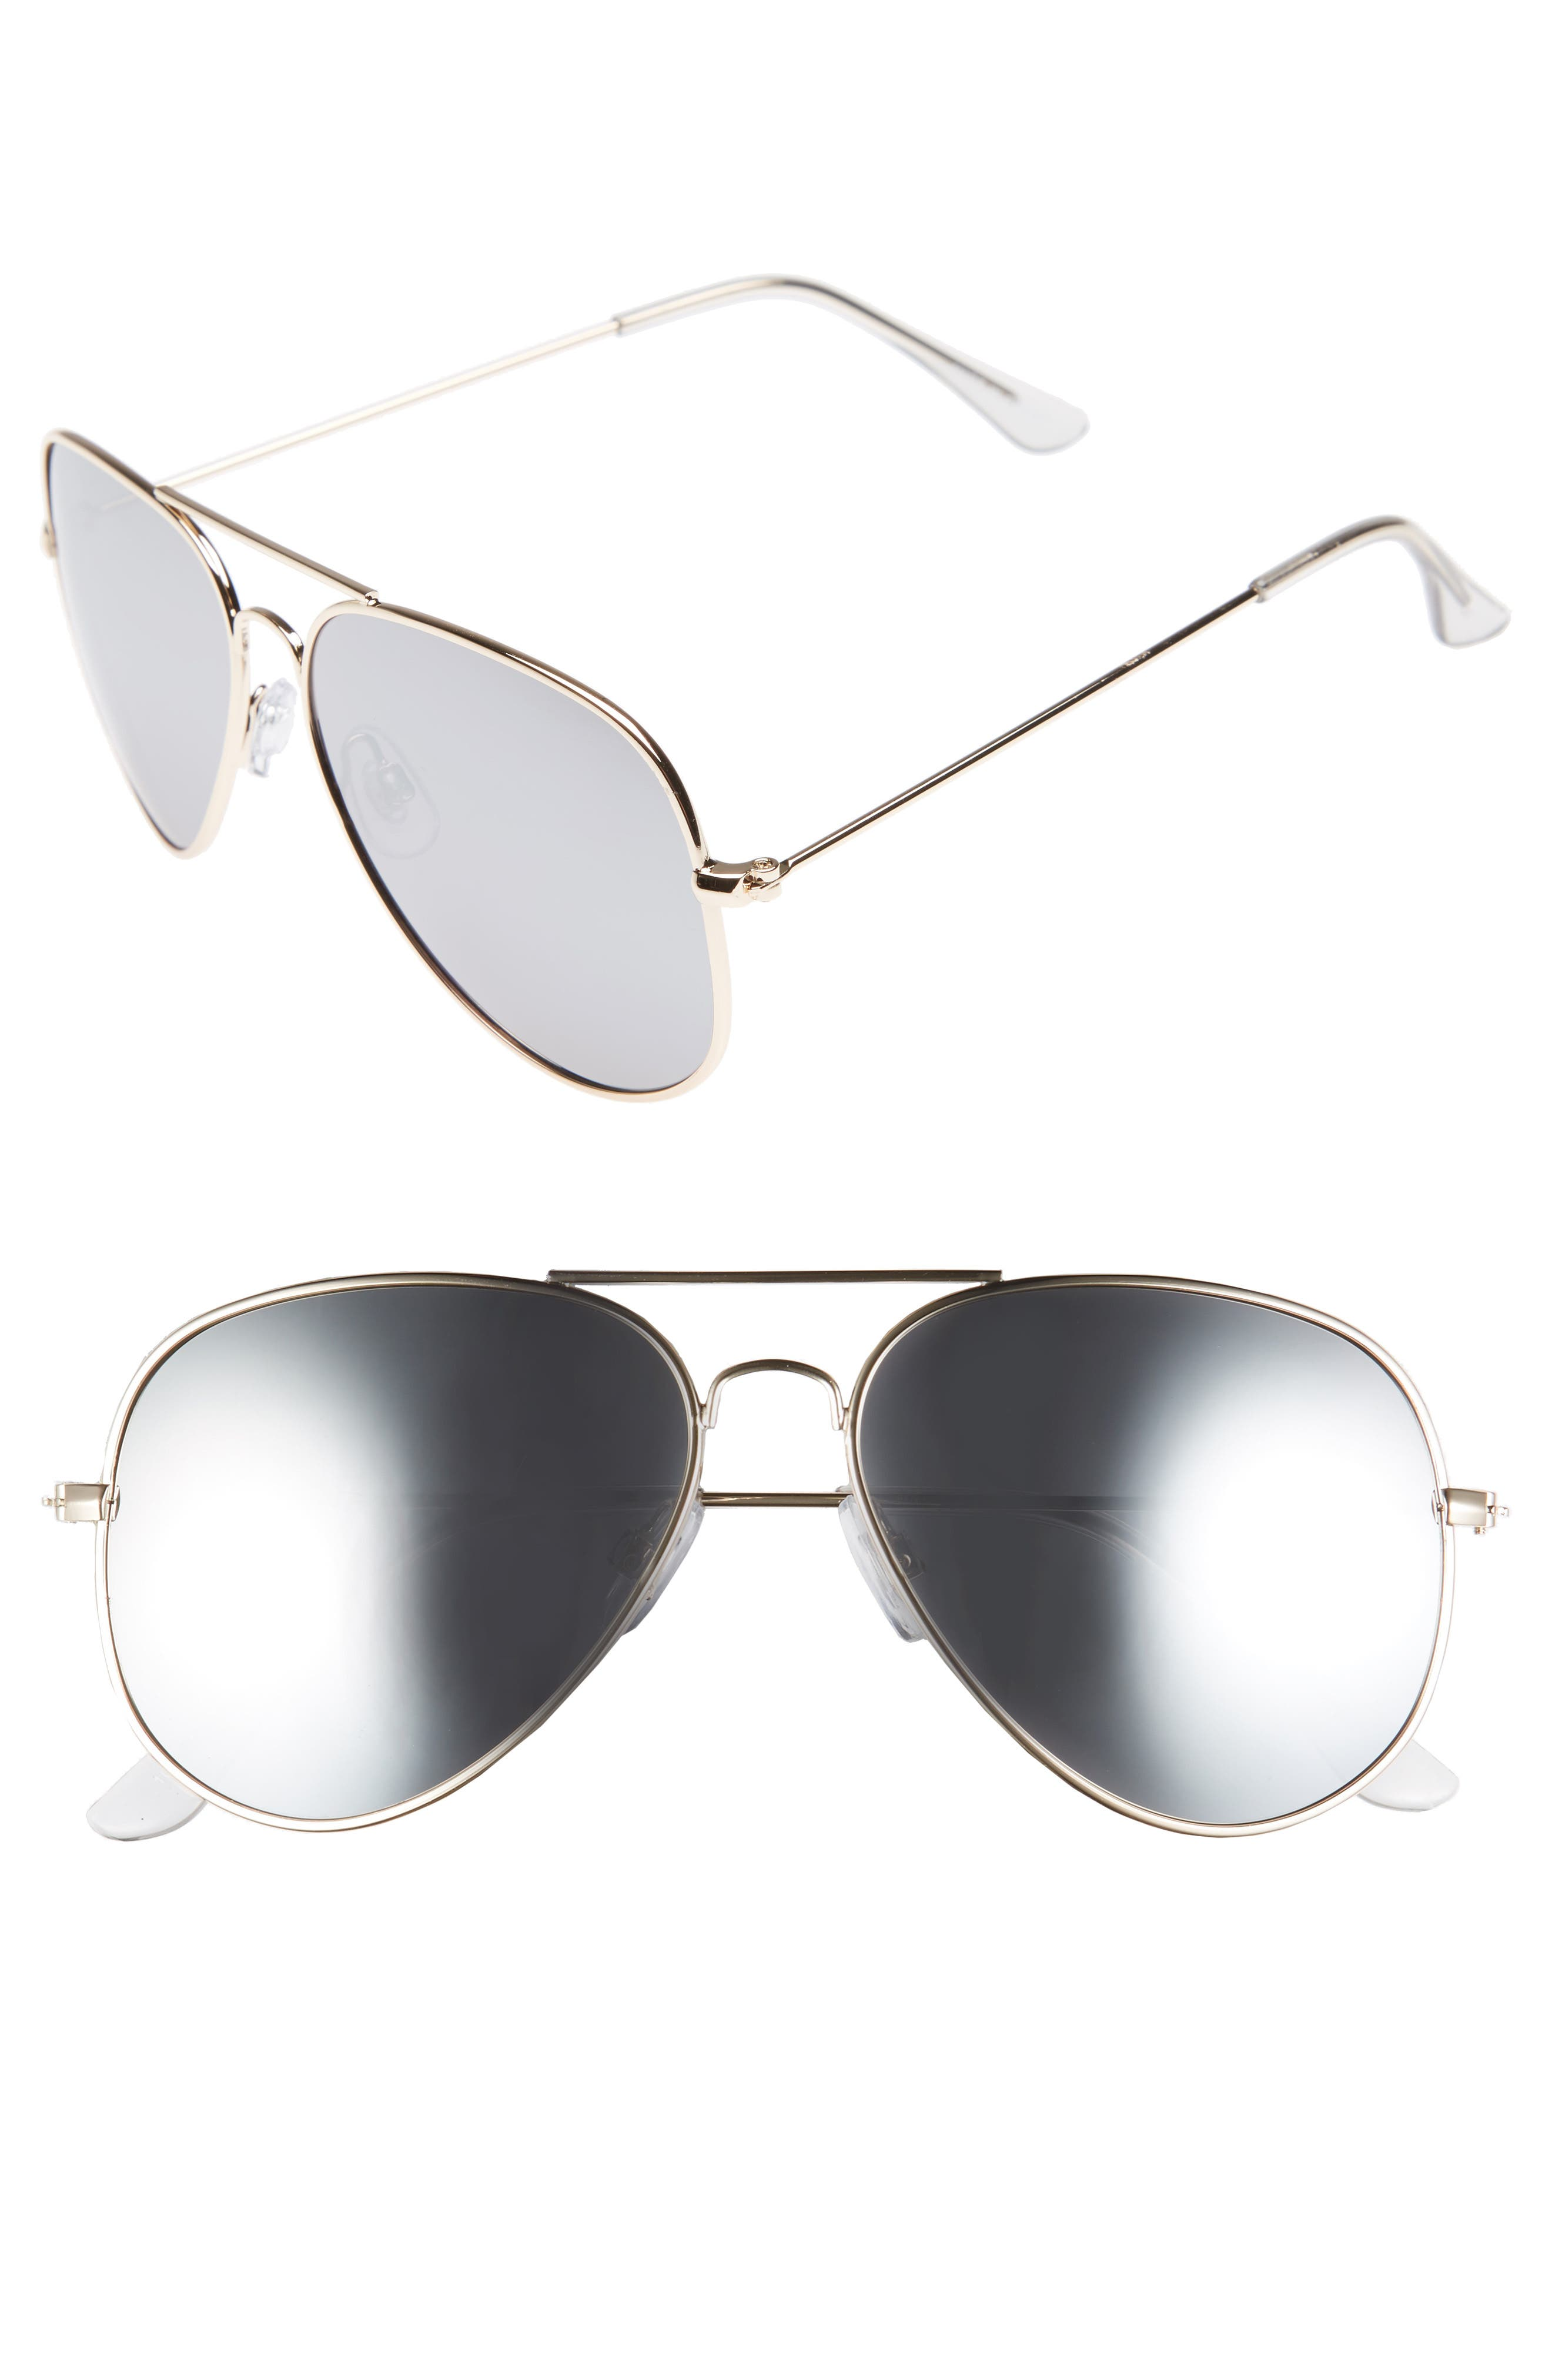 Mirrored Aviator 57mm Sunglasses,                             Main thumbnail 7, color,